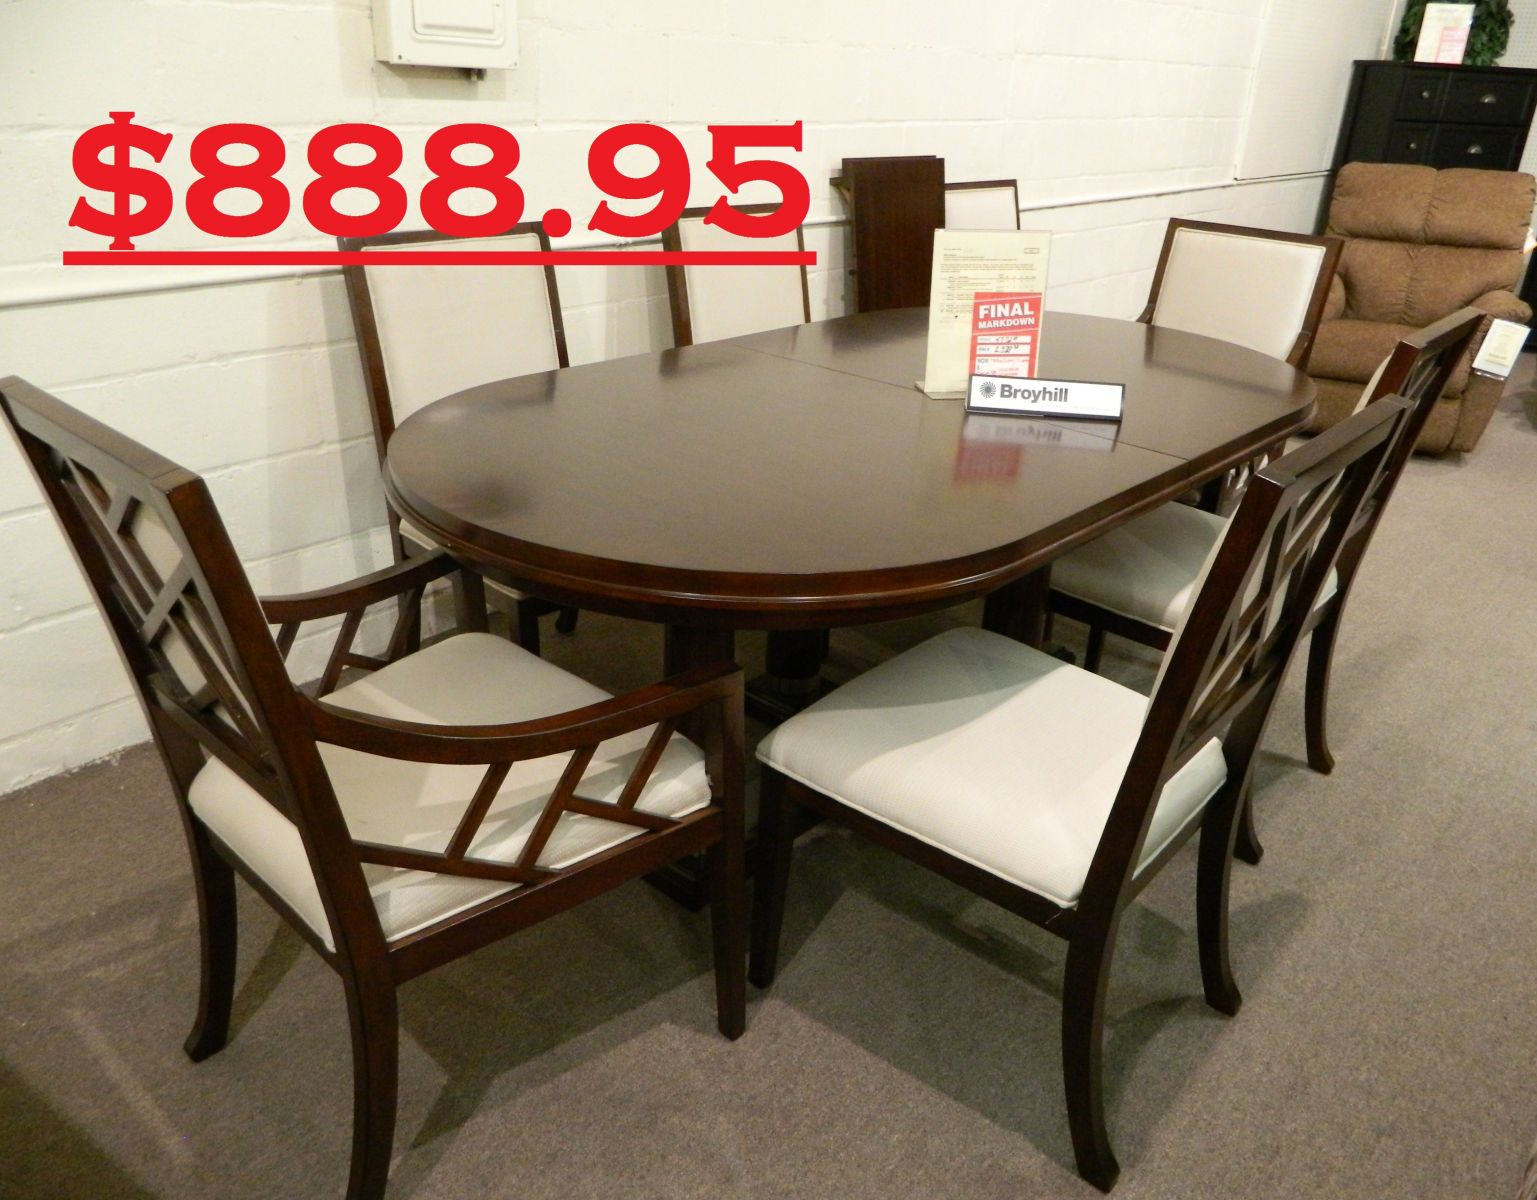 Dining Room Sets Clearance | About Walker Furniture Your Thomasville Furniture Store In